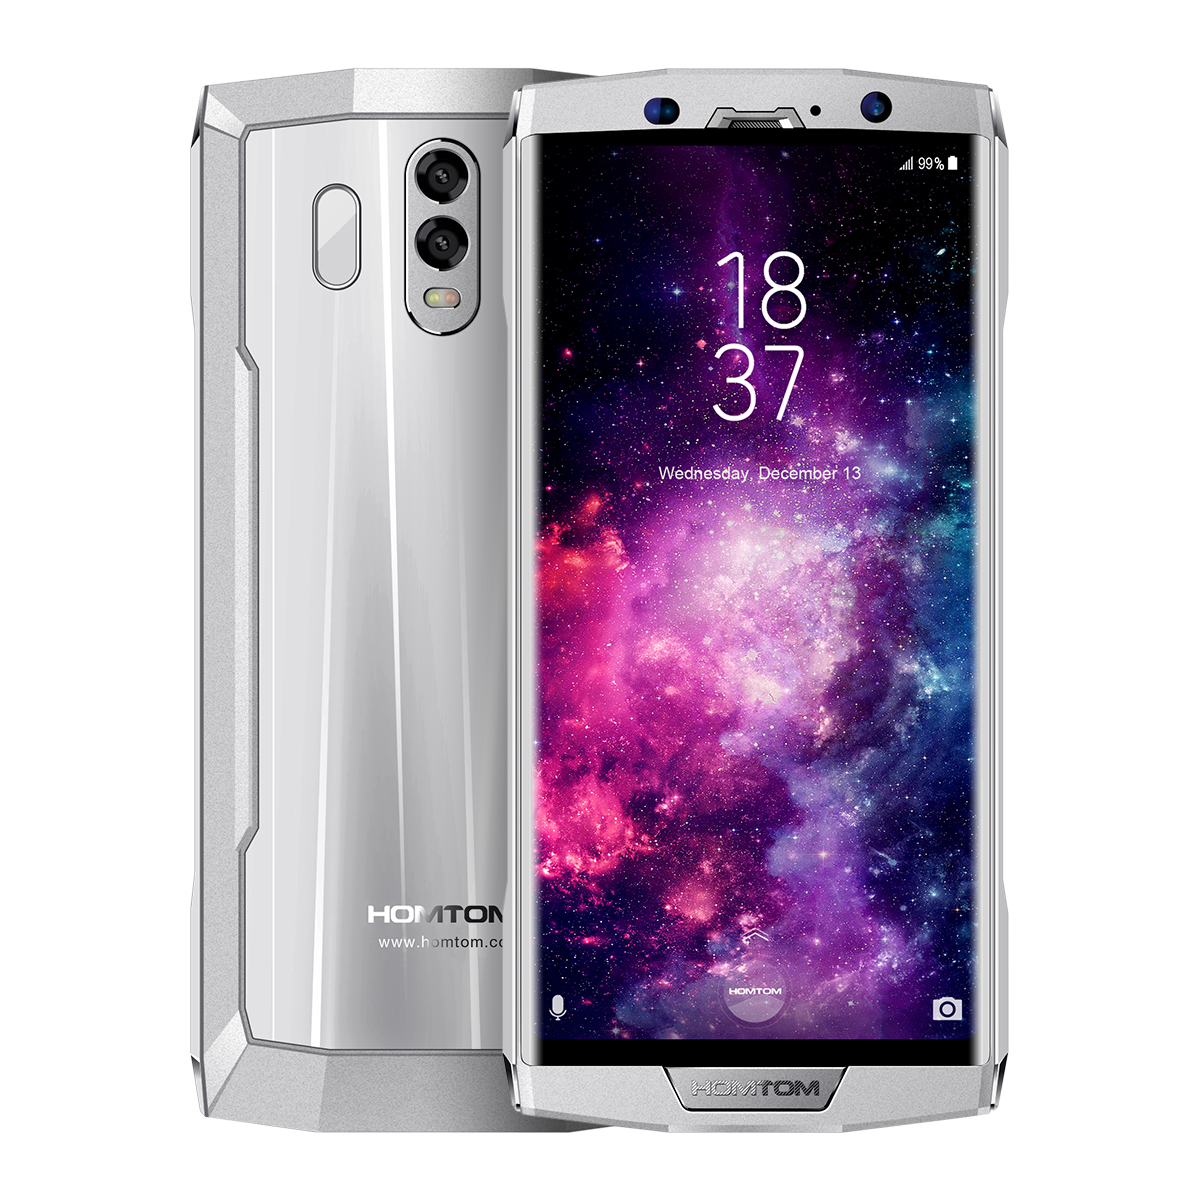 HOMTOM HT70 Android 7.0 10000mAh Smartphone